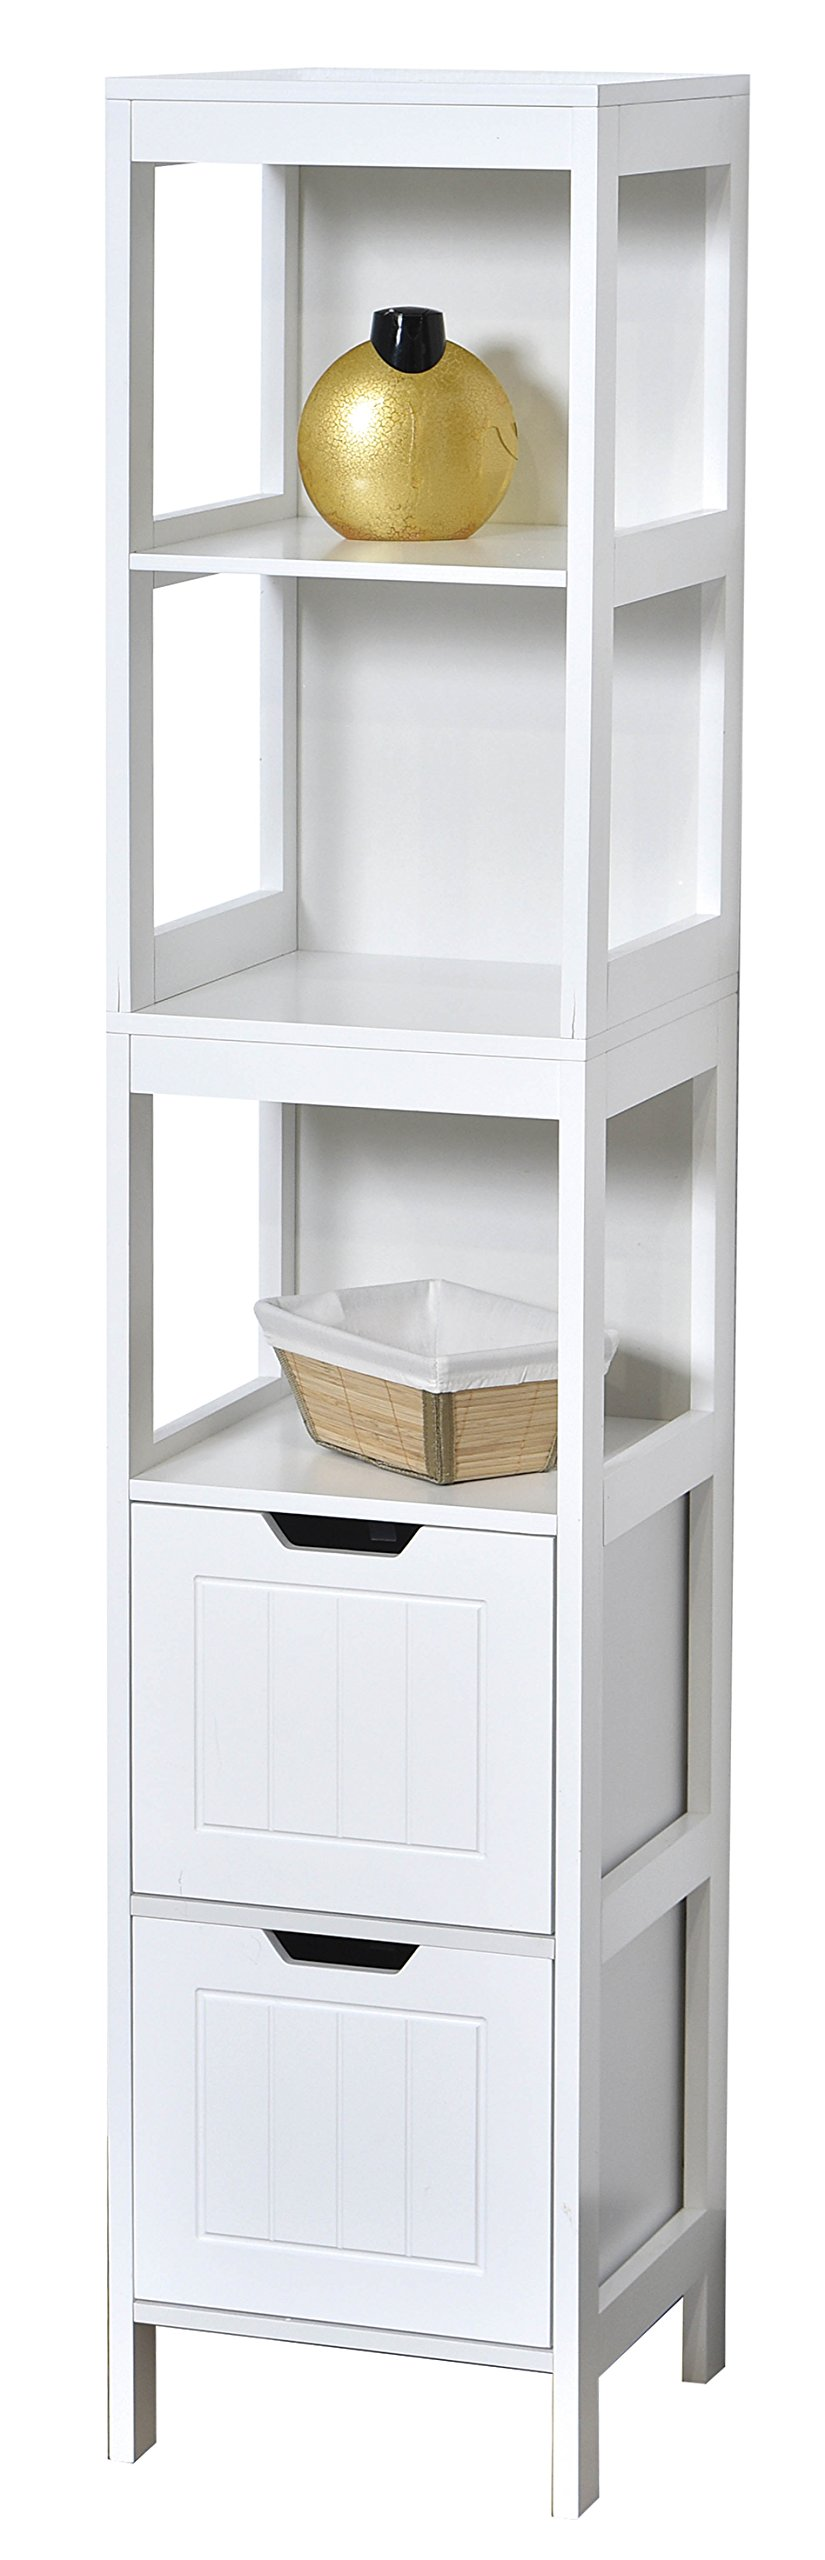 Evideco Collection Cap Ferret Bathroom Free Standing Linen Tower Shelf 2 Drawers White